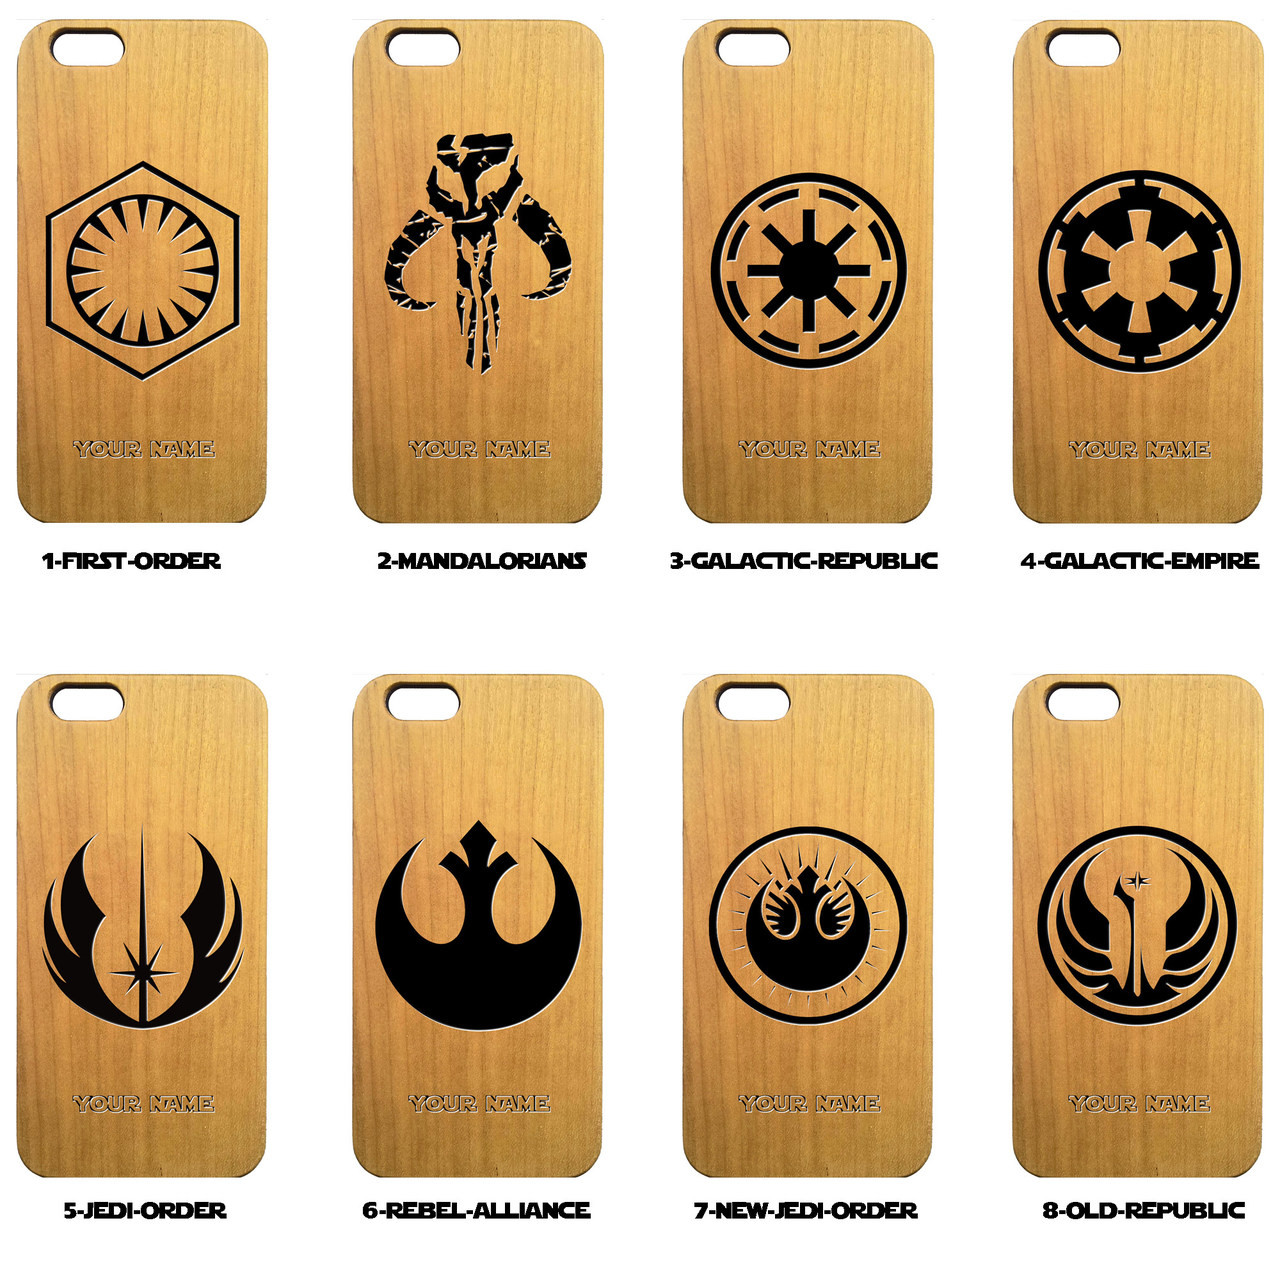 Star Wars Symbols Wood Phone Case - Star Wars Inspired - Laser Engraved  Gift - iPhone 5 5s 6 6s 7 plus Samsung s5 s6 - 93